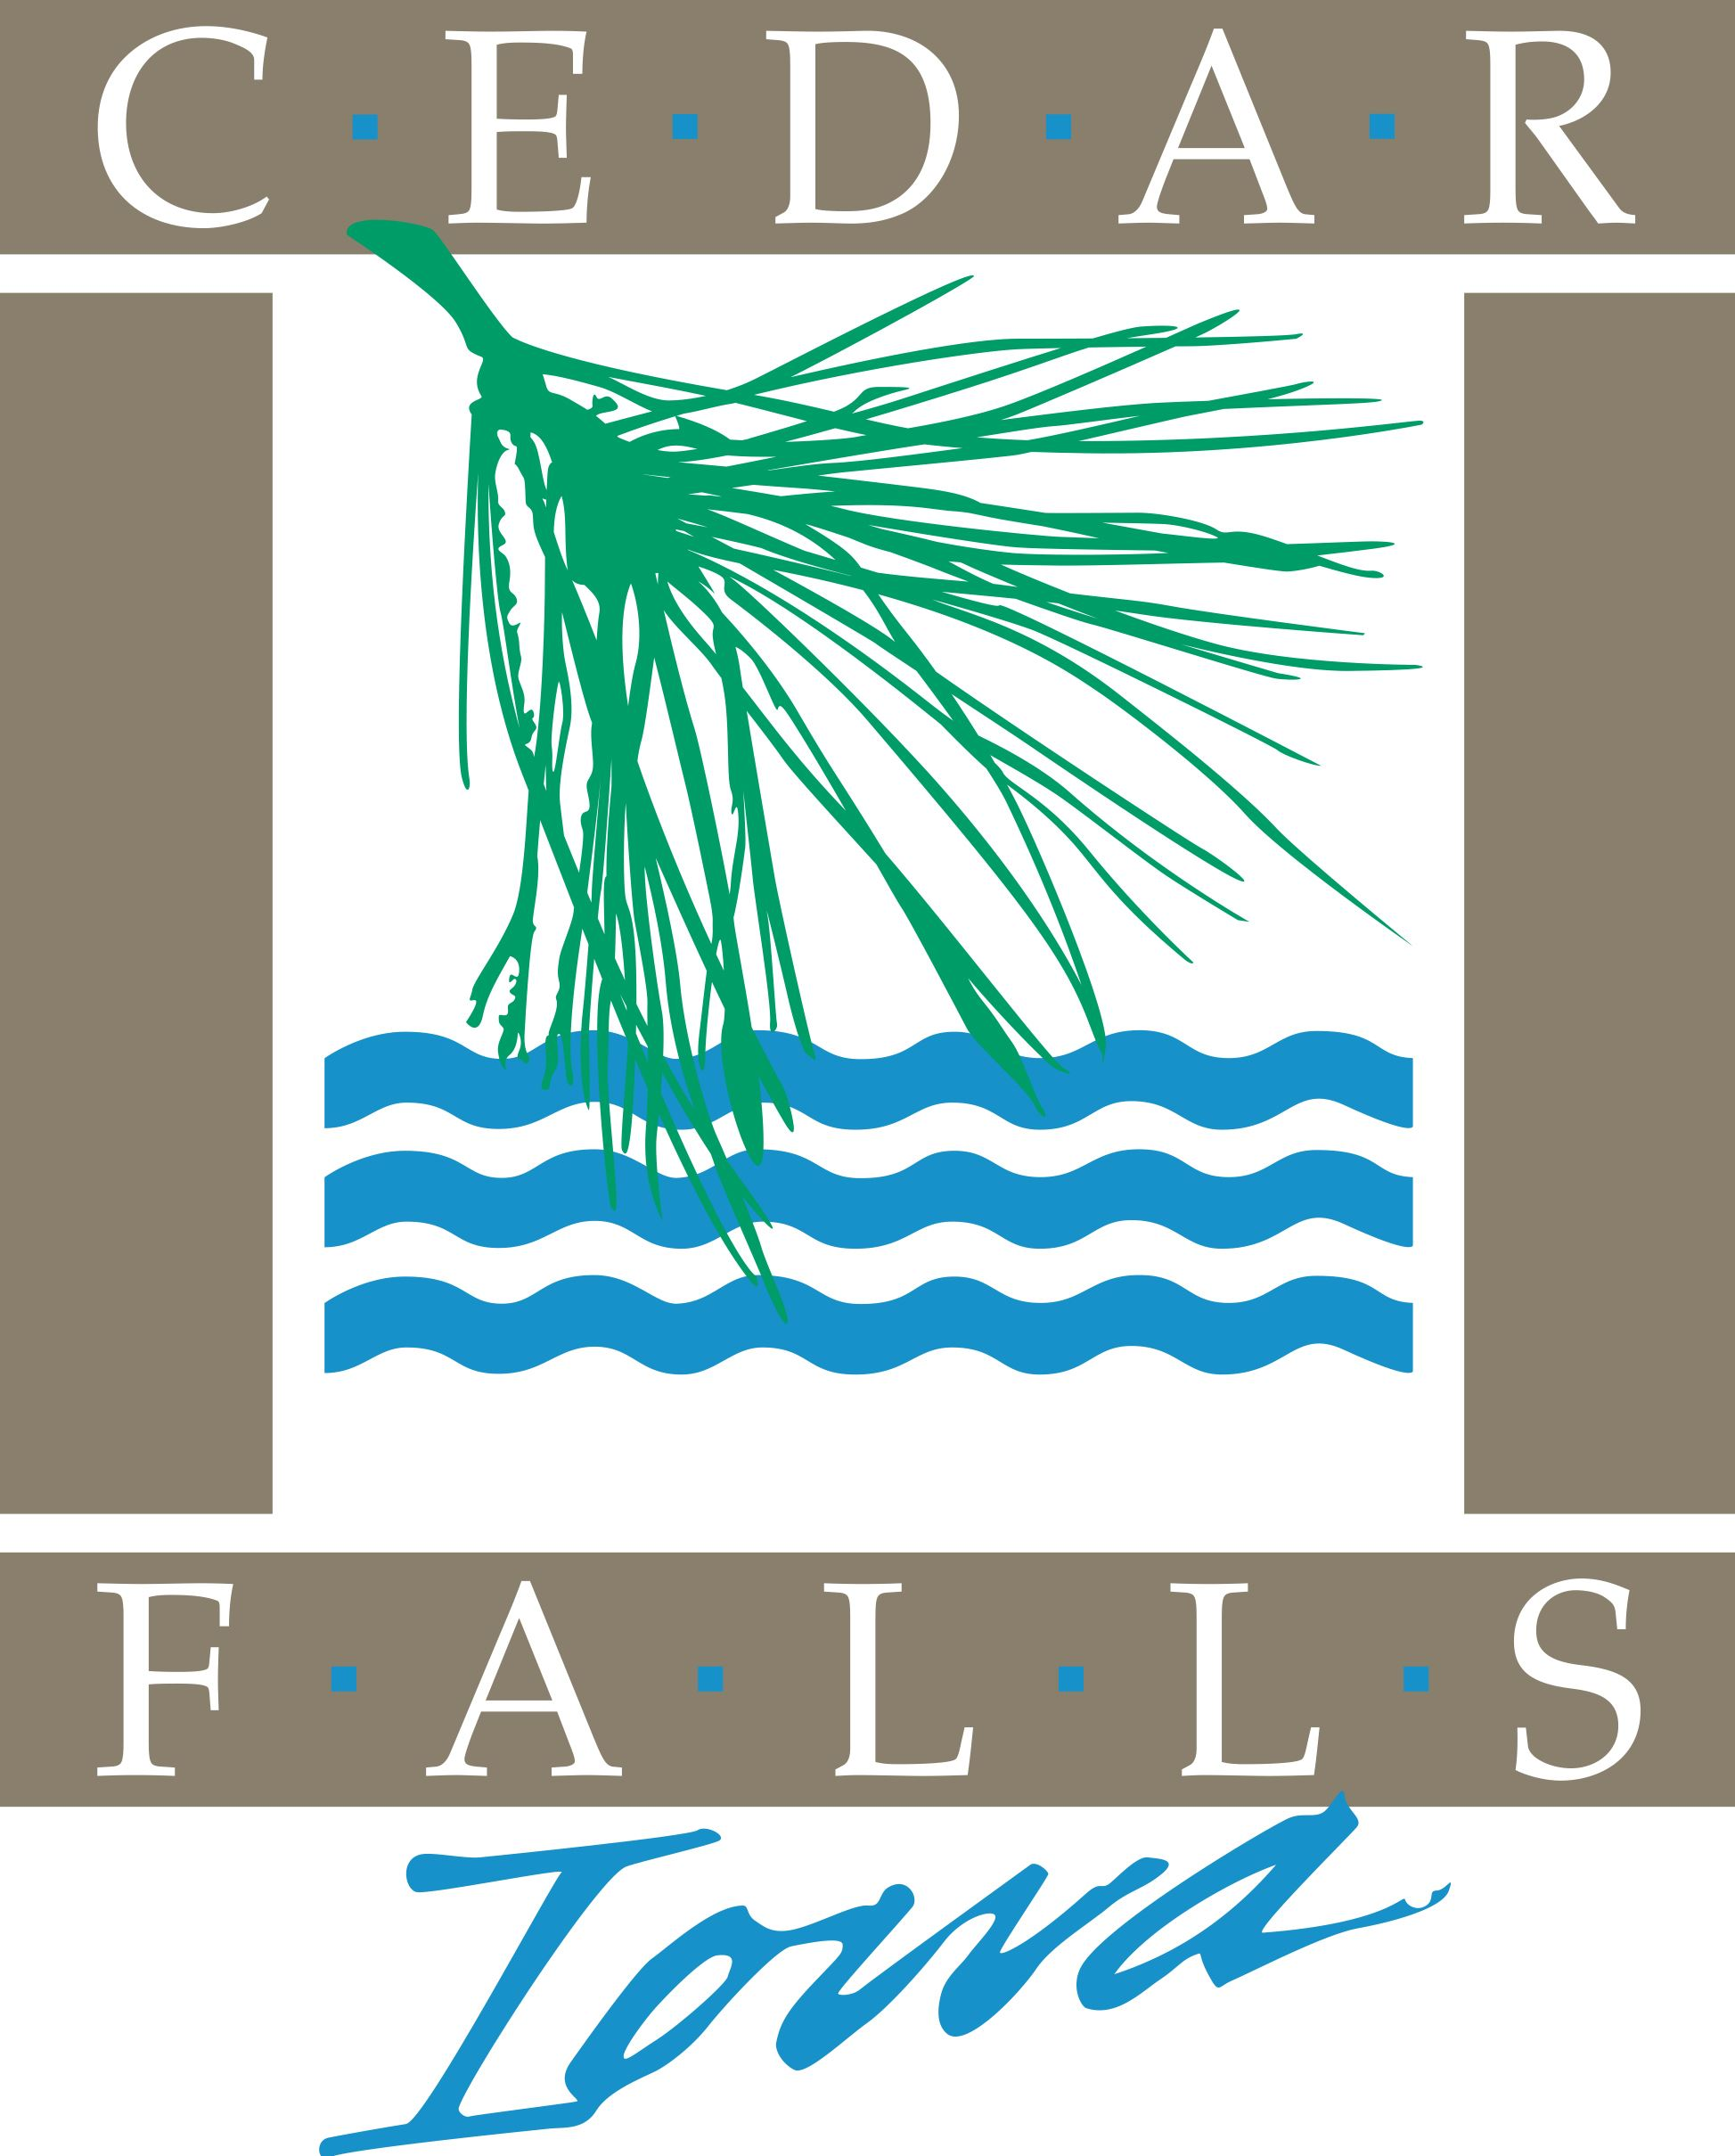 The City of Cedar Falls logo